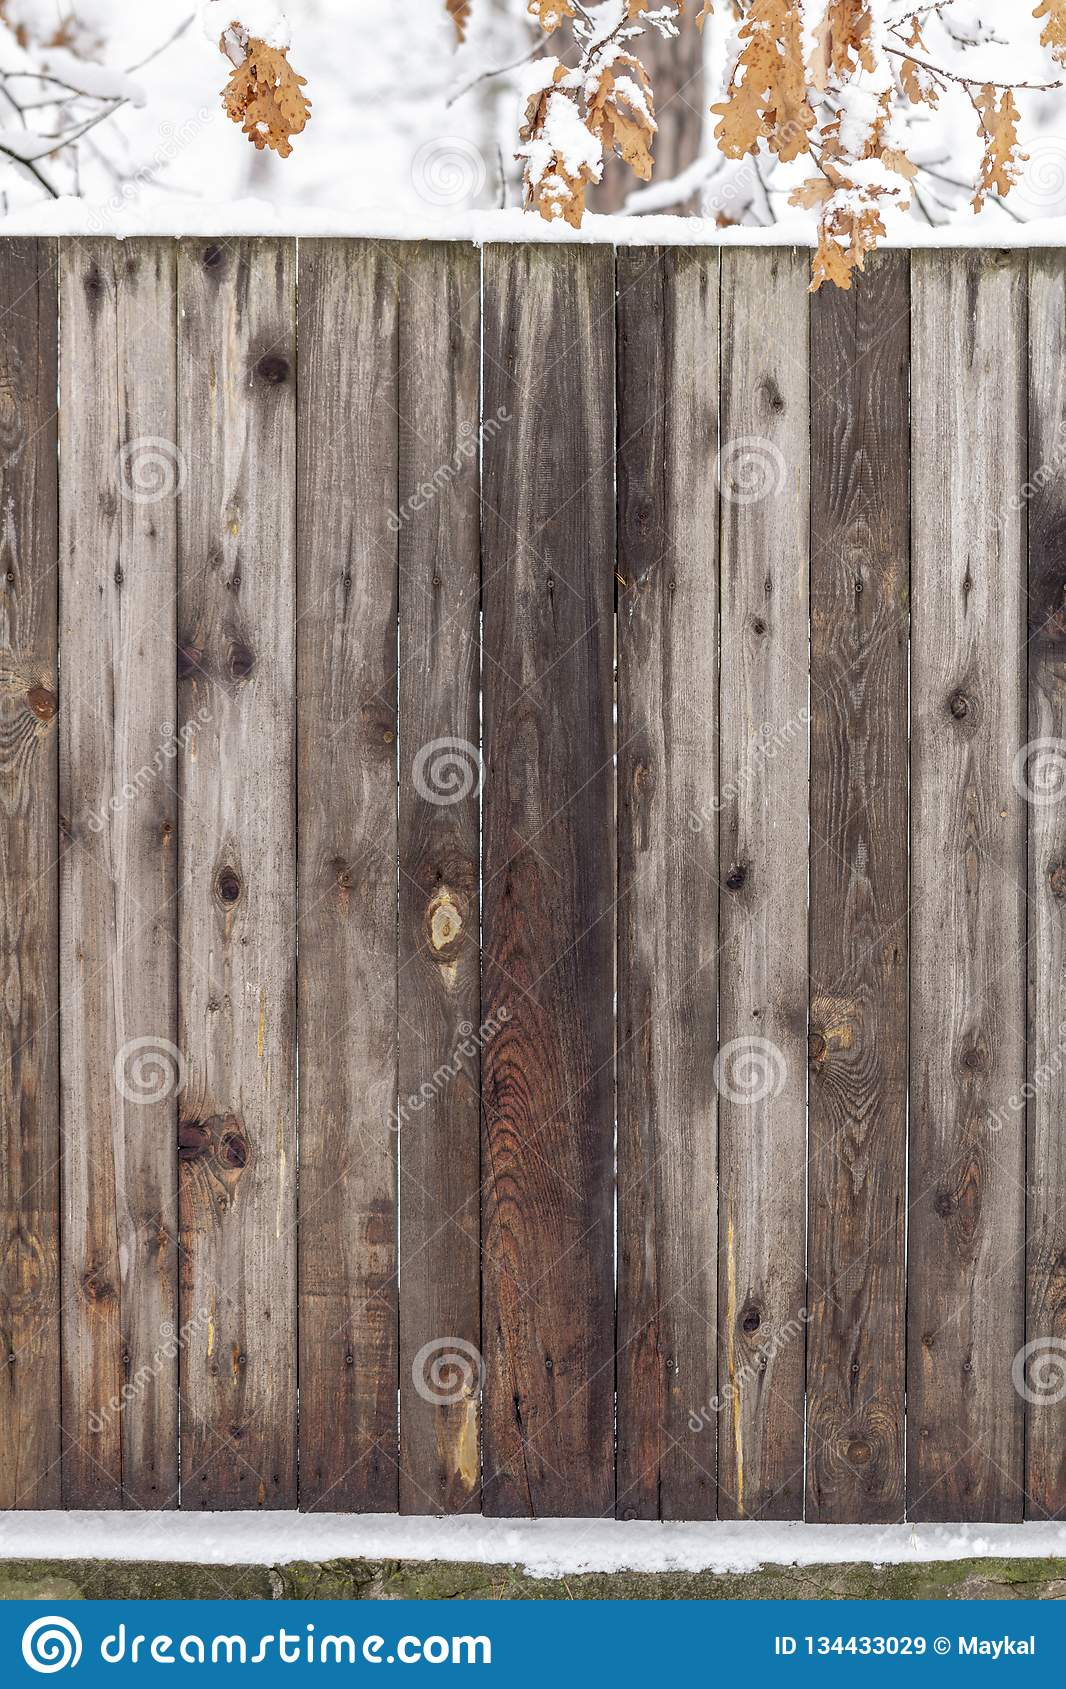 Classic Nature Wood Texture Wallpaper For Background Old